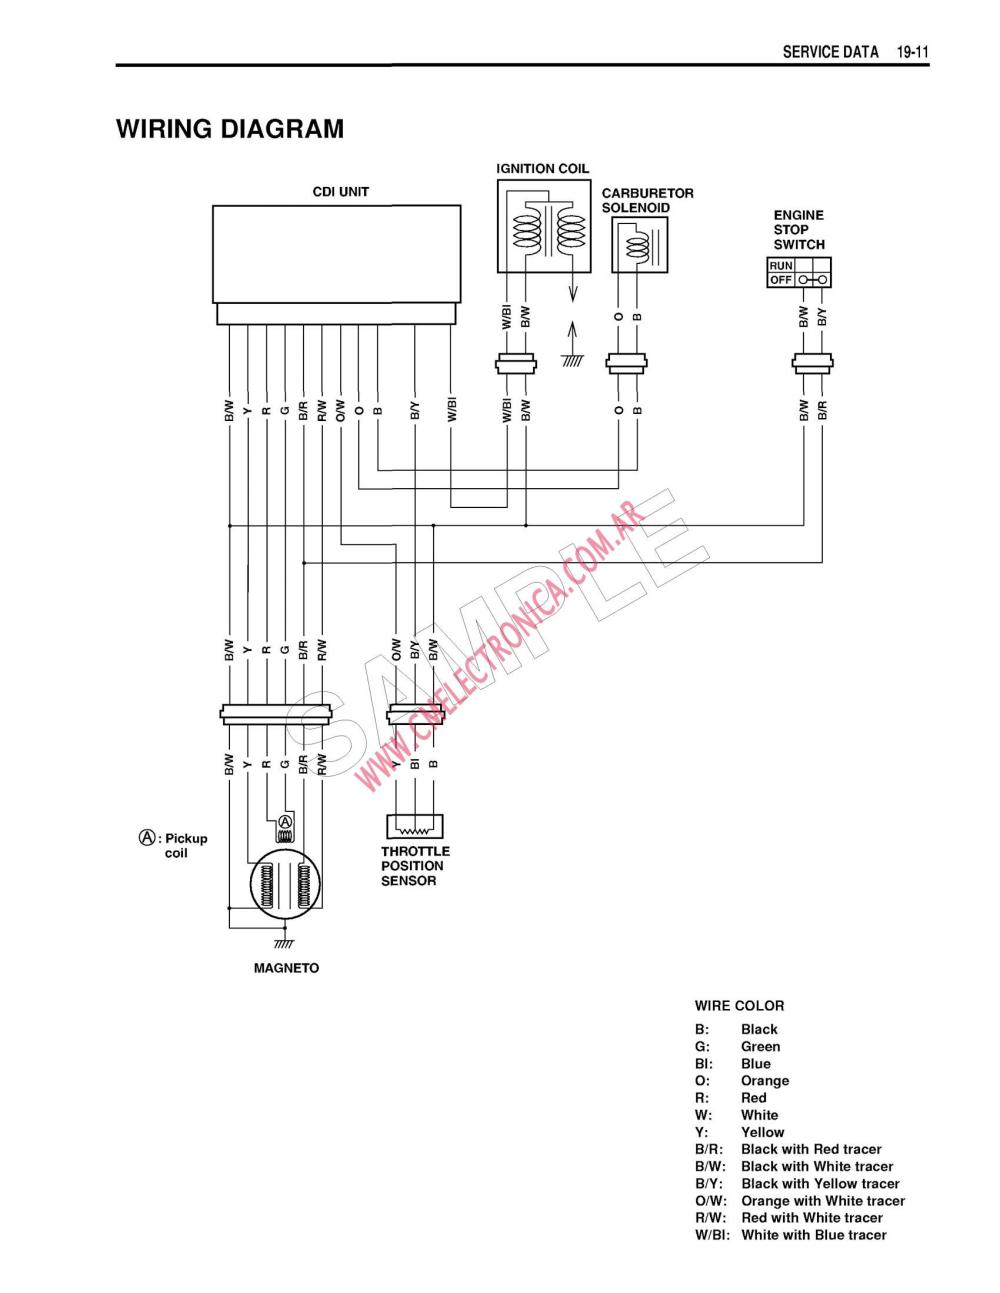 medium resolution of wiring diagram 2000 suzuki rm get free image about wiring diagram wiring diagram honda trx 250 wiring diagram ecu wiring diagram suzuki